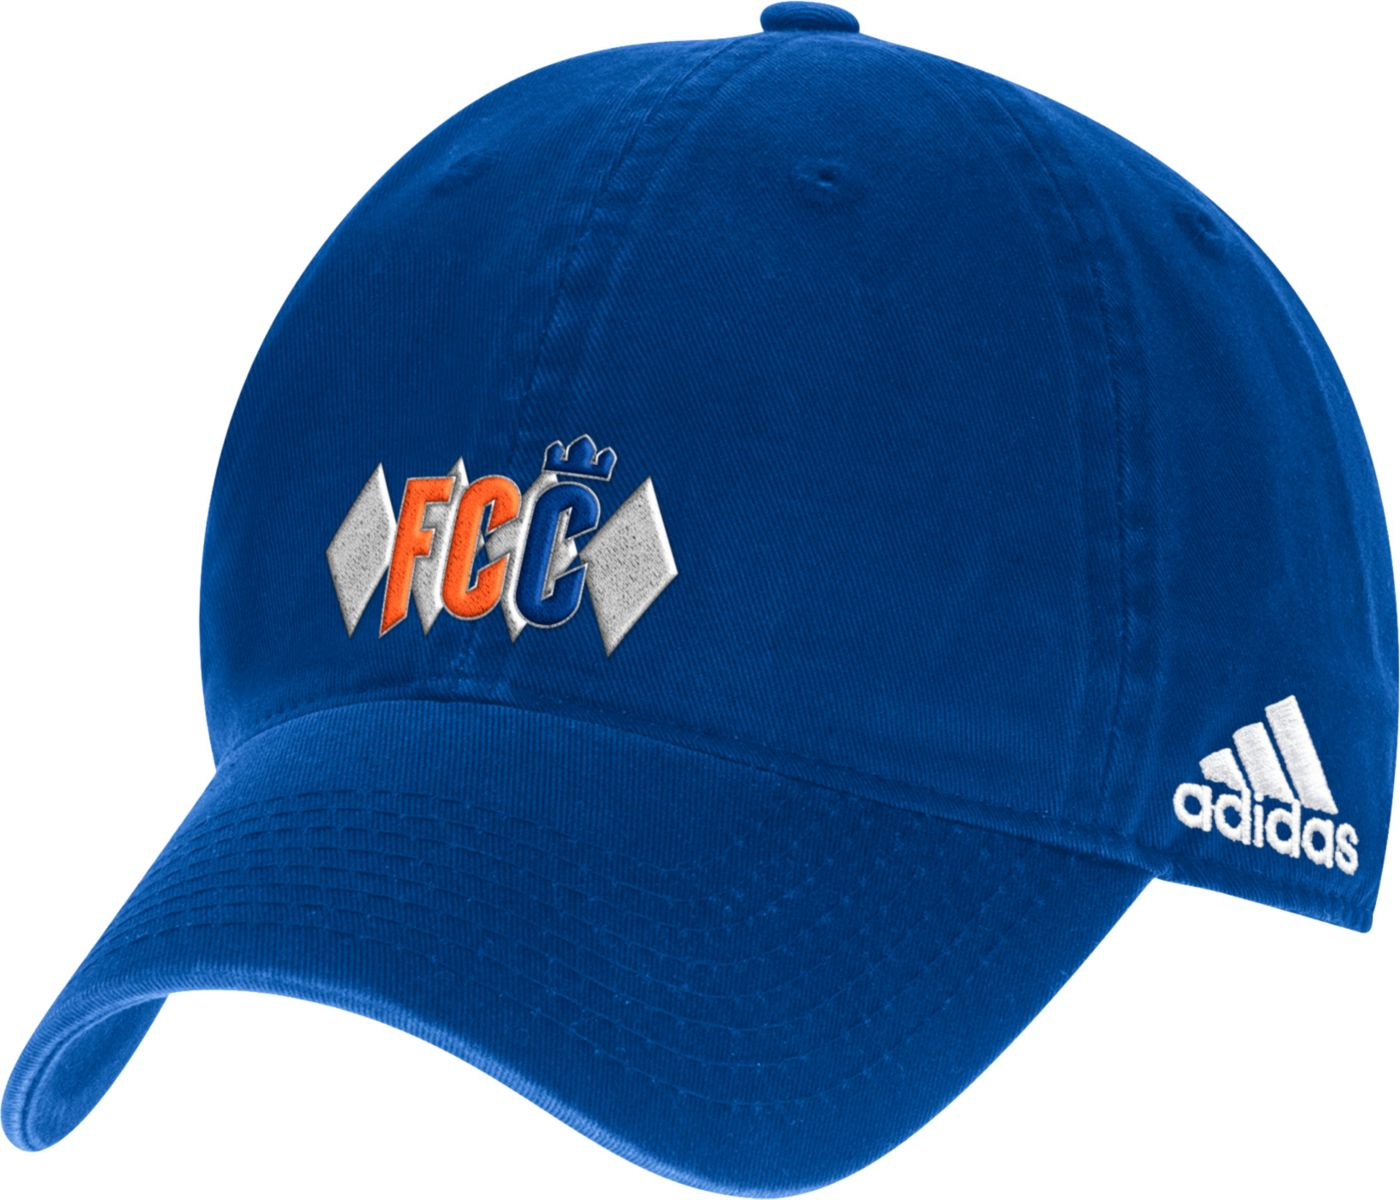 adidas Men's FC Cincinnati Diamond Blue Adjustable Hat